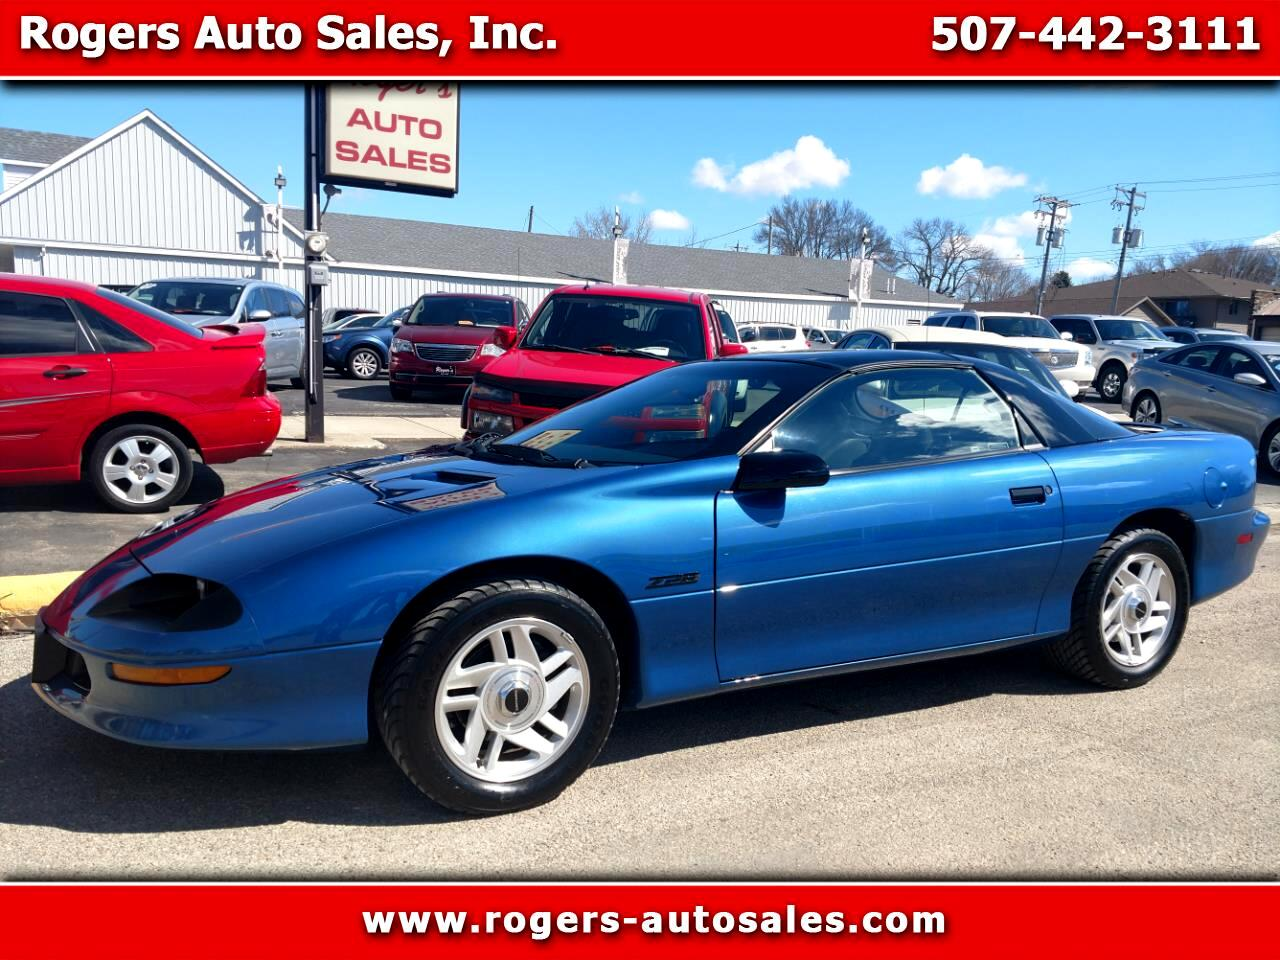 1995 Chevrolet Camaro Z28 COUPE T-TOP LT1